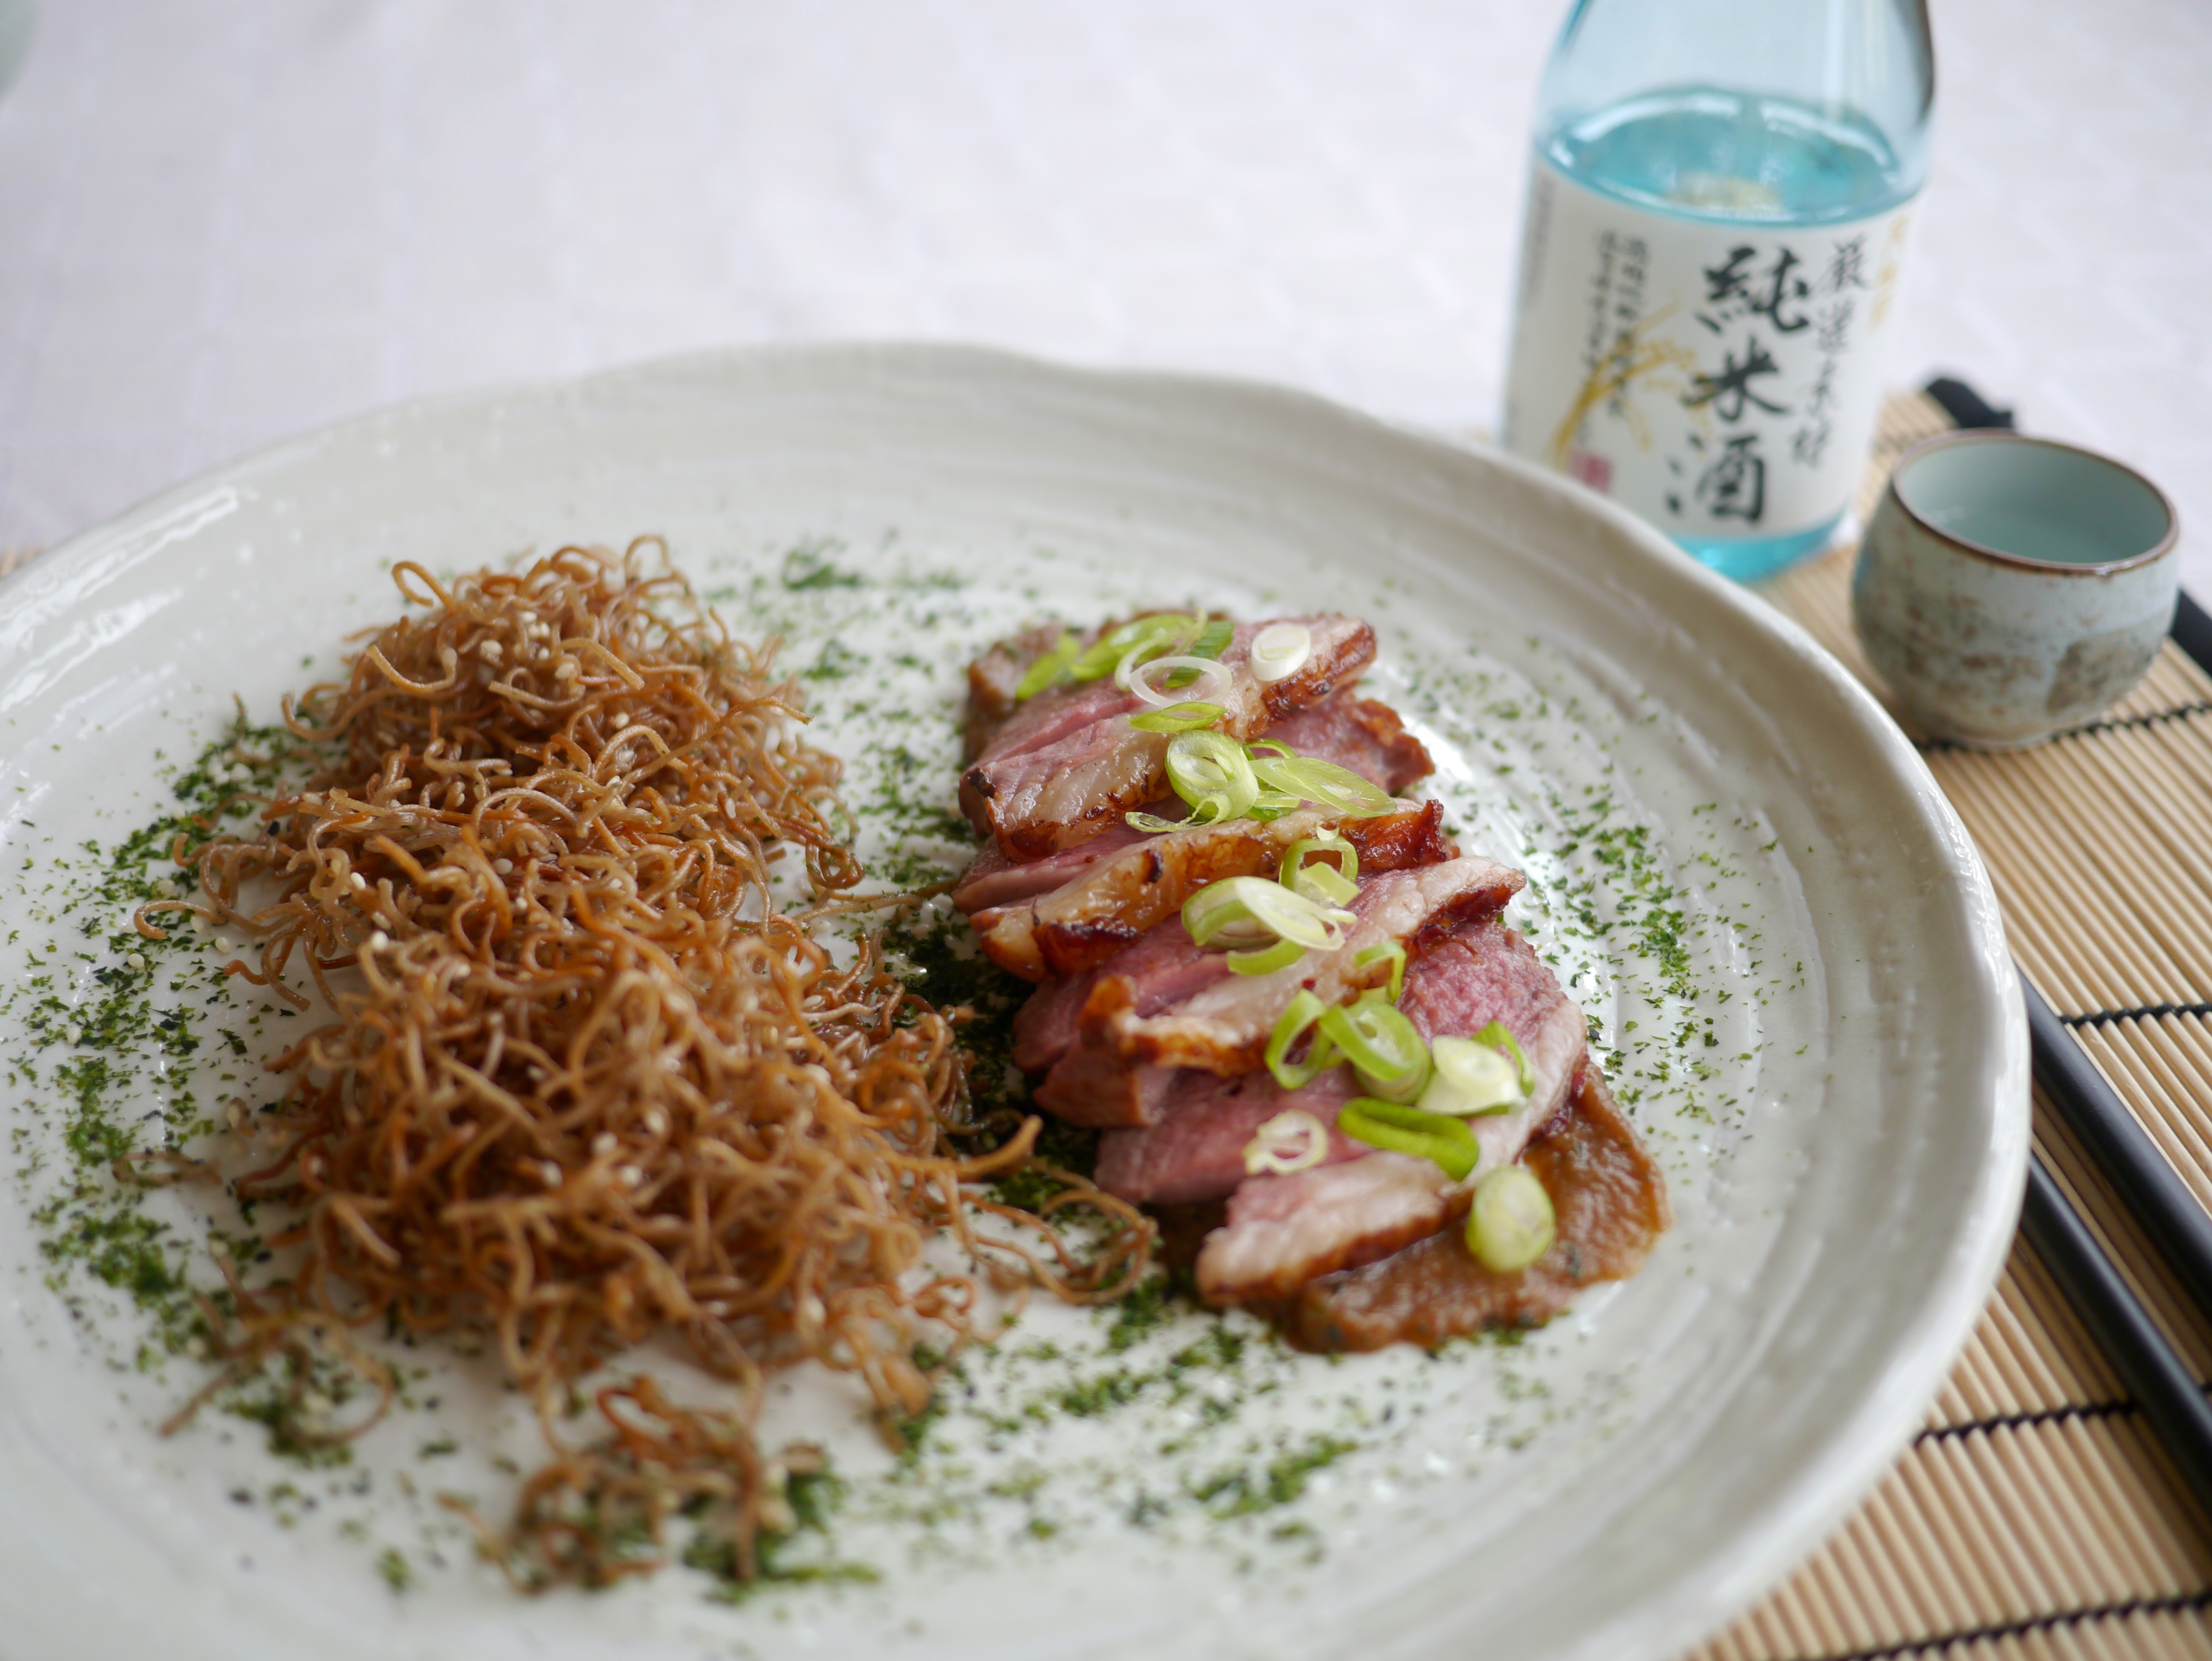 Watch Miso-grilled Cod with Edamame Fried Rice Recipe video